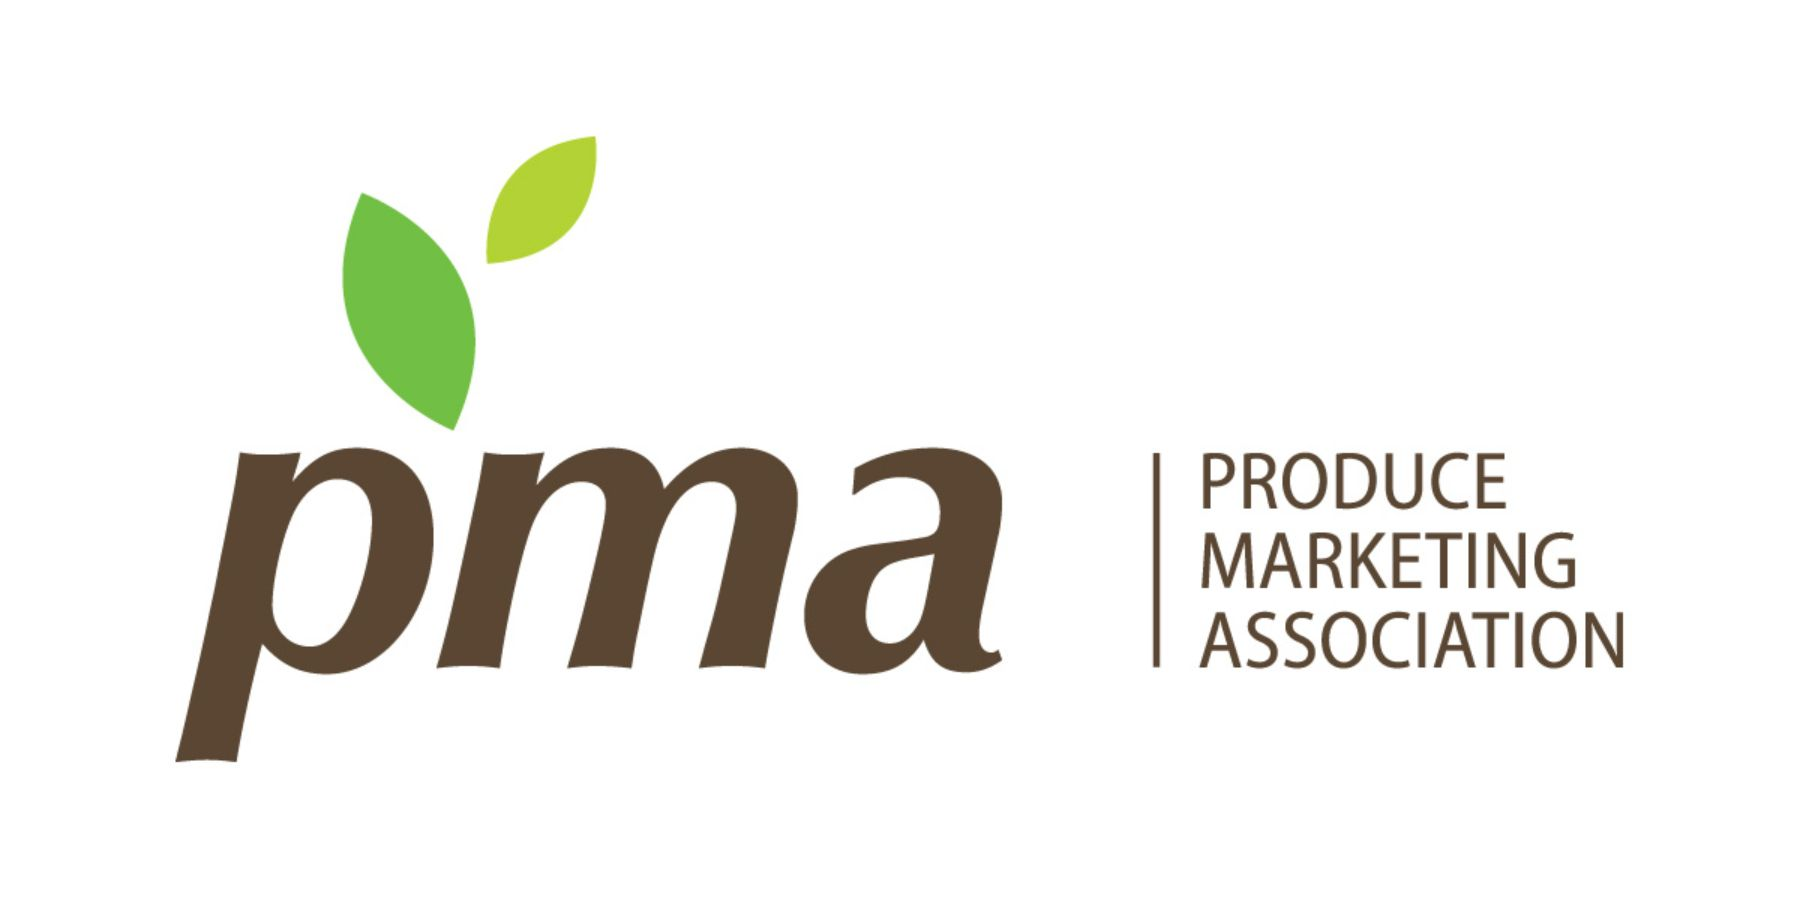 PMA (Produce Marketing Association) Logo